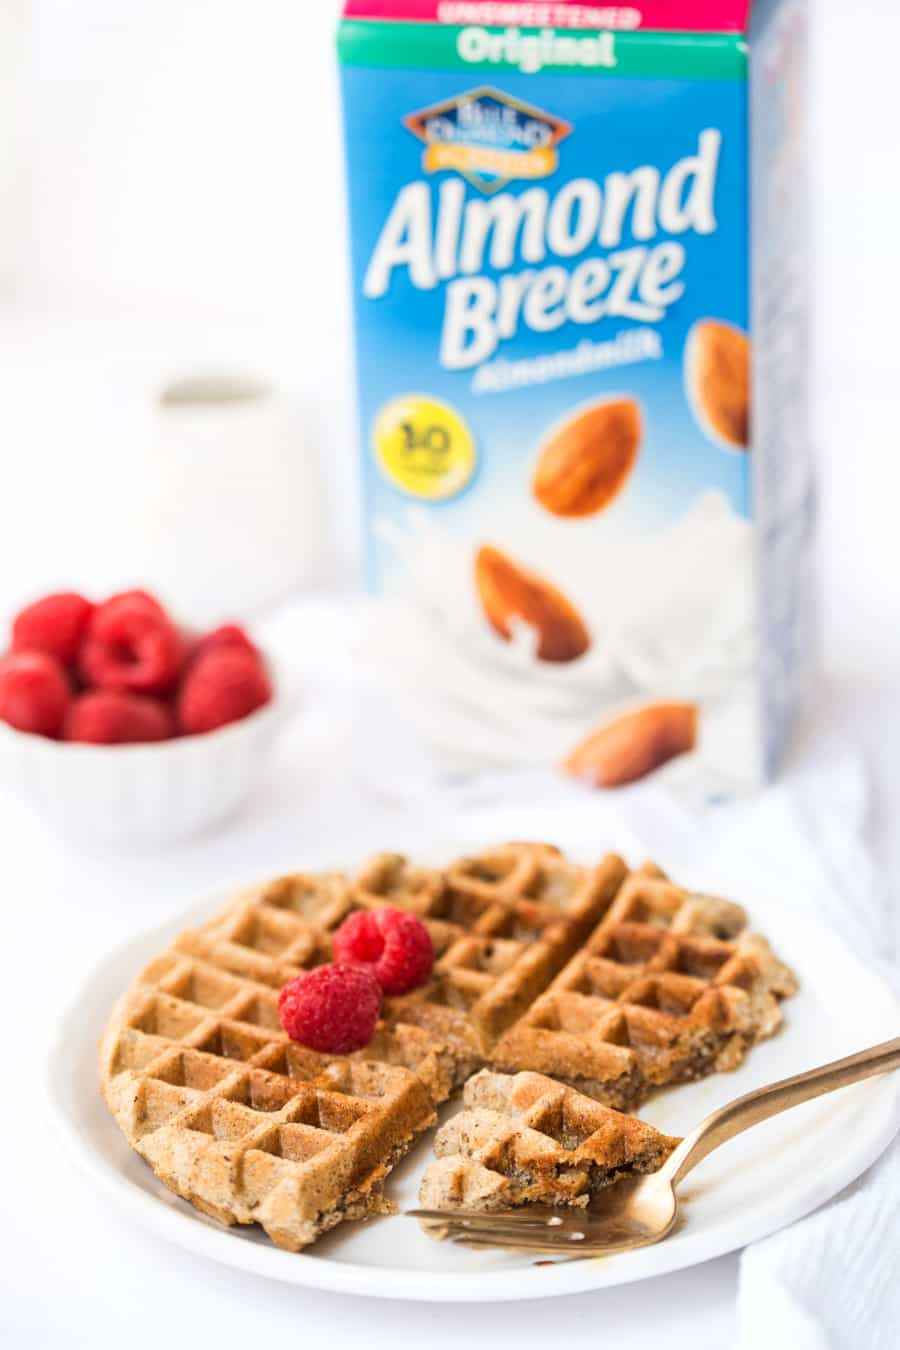 These ALMOND FLOUR WAFFLES are made what breakfast dreams are made of! With a blend of wholesome, high-protein flours and whipped egg whites, they're hearty and fluffy at the same time!